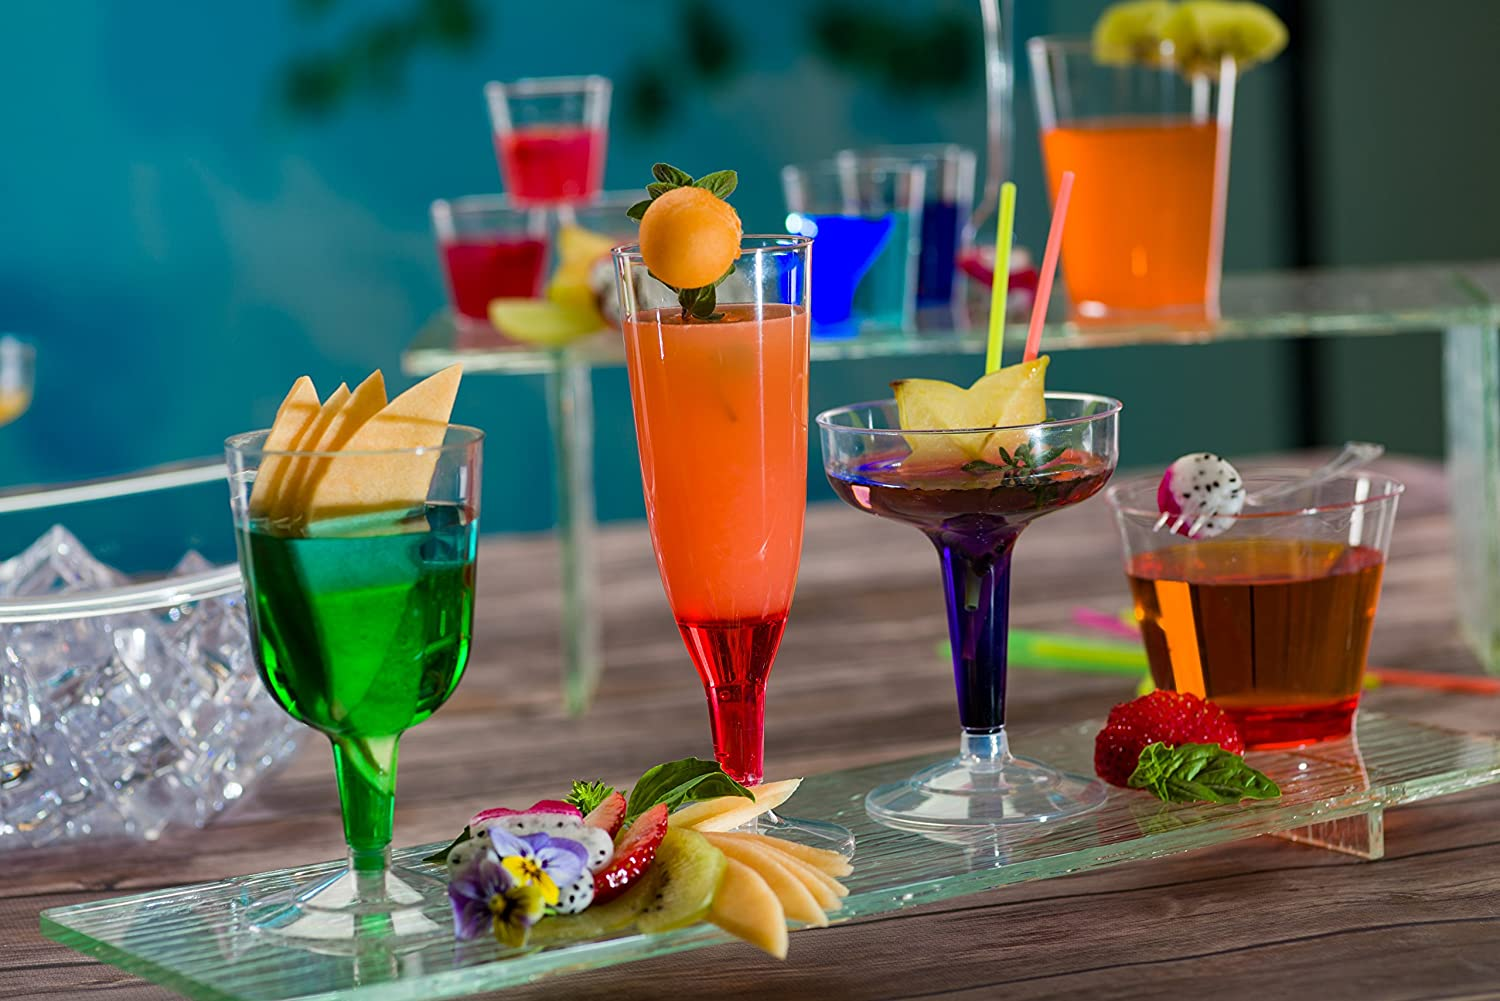 Plastic Party Drinkware<br/>Size Options: 4oz Champagne Cup, 5oz Wine Cup, 5oz Champagne Flute, 5oz Margarita Tumbler, and 7oz Martini Tumbler